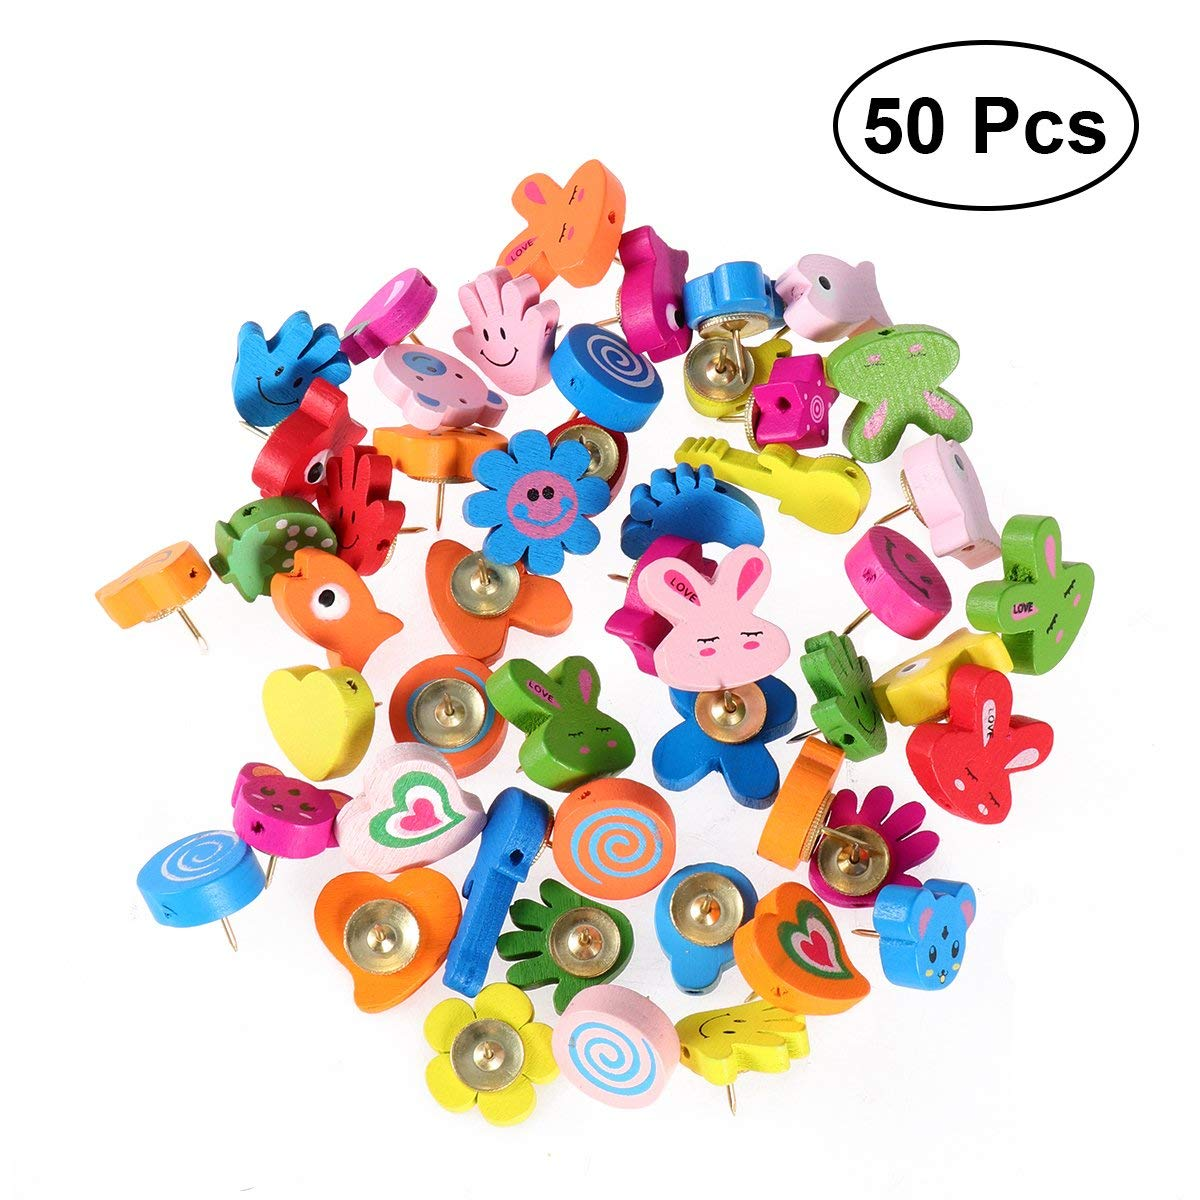 NUOLUX 50 PCS Push Pins, Wooden Bulletin Board Borders Pushpins, Lovely Cartoon Shape Thumb Tacks, Thumbtacks Decorative for Corkboard Office School Home Supplies (Random Color and Pattern)